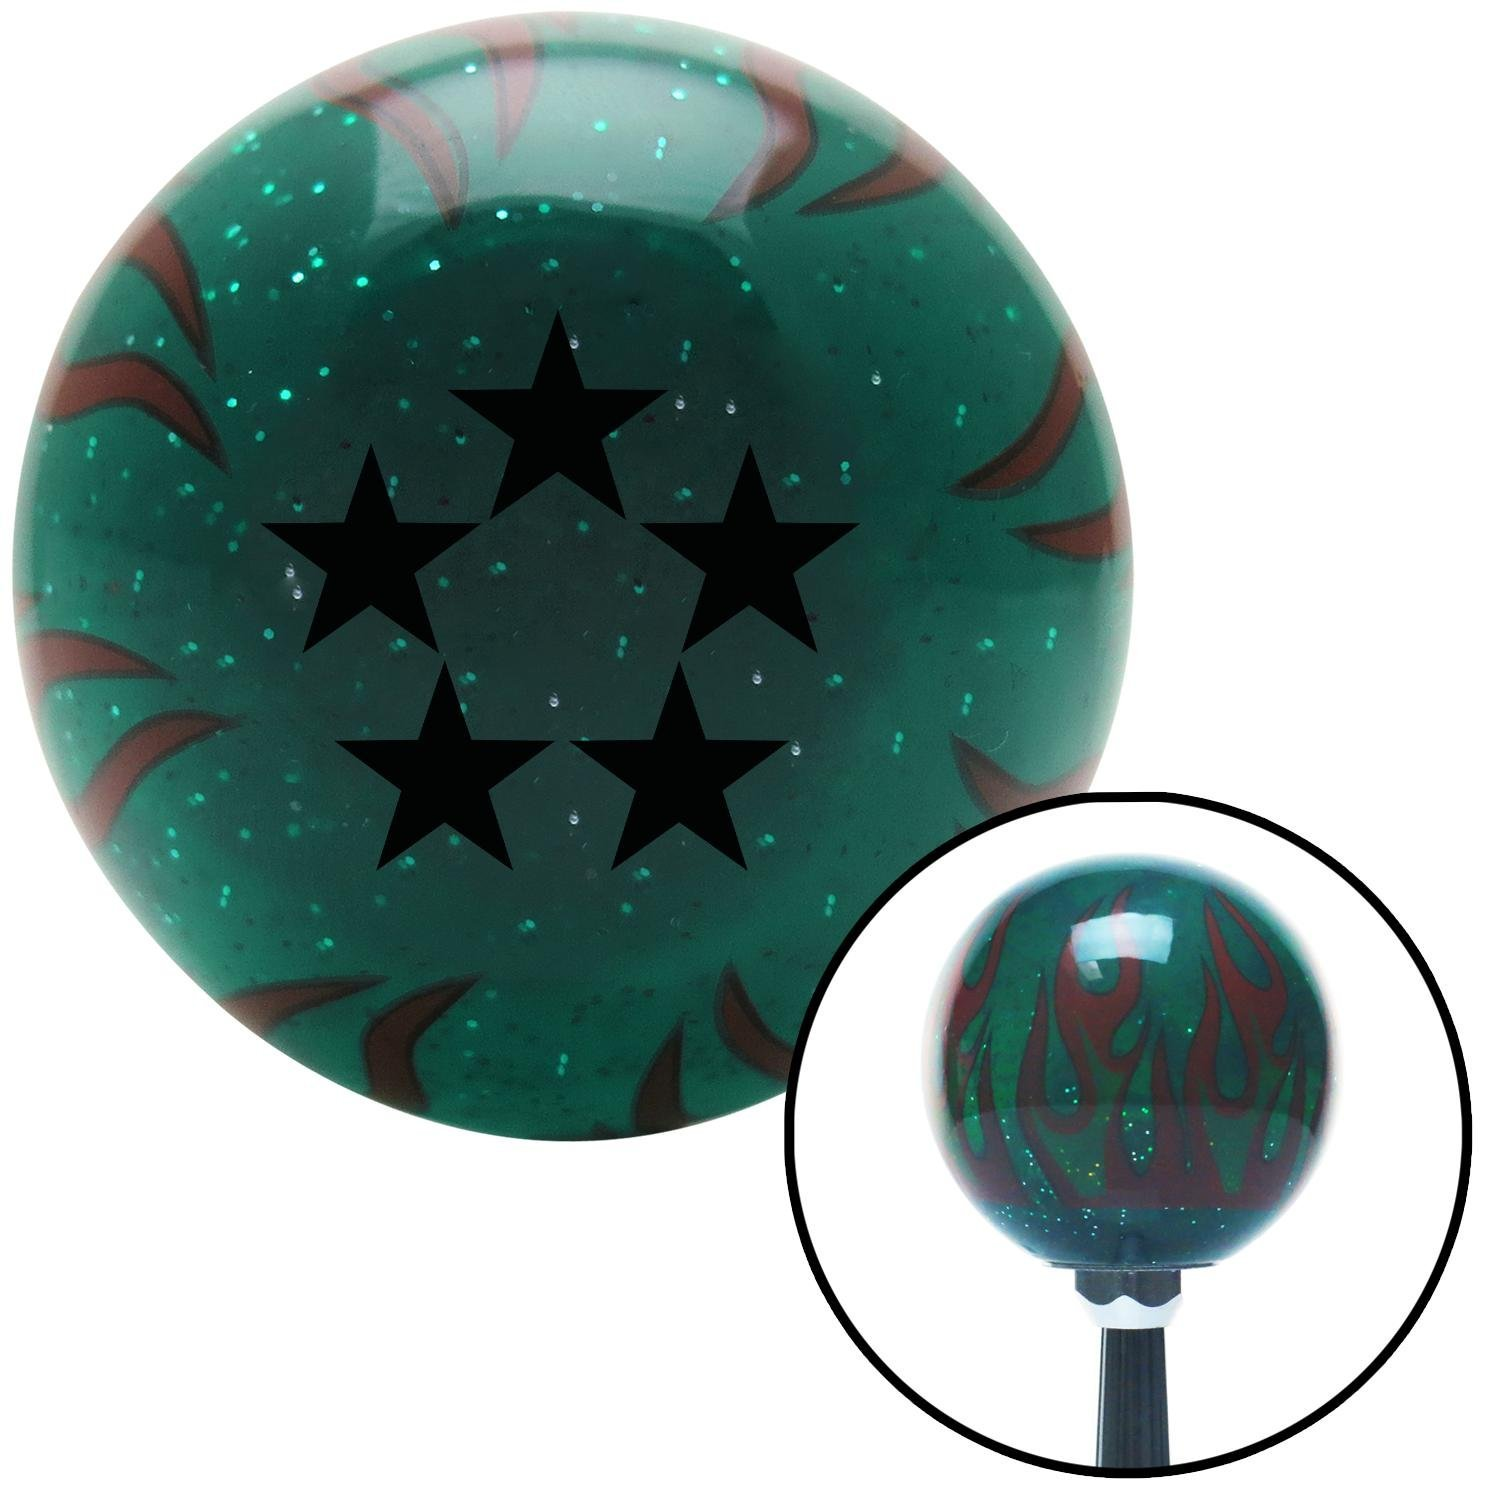 American Shifter 262794 Green Flame Metal Flake Shift Knob with M16 x 1.5 Insert Black Officer 11 - General of Air Force